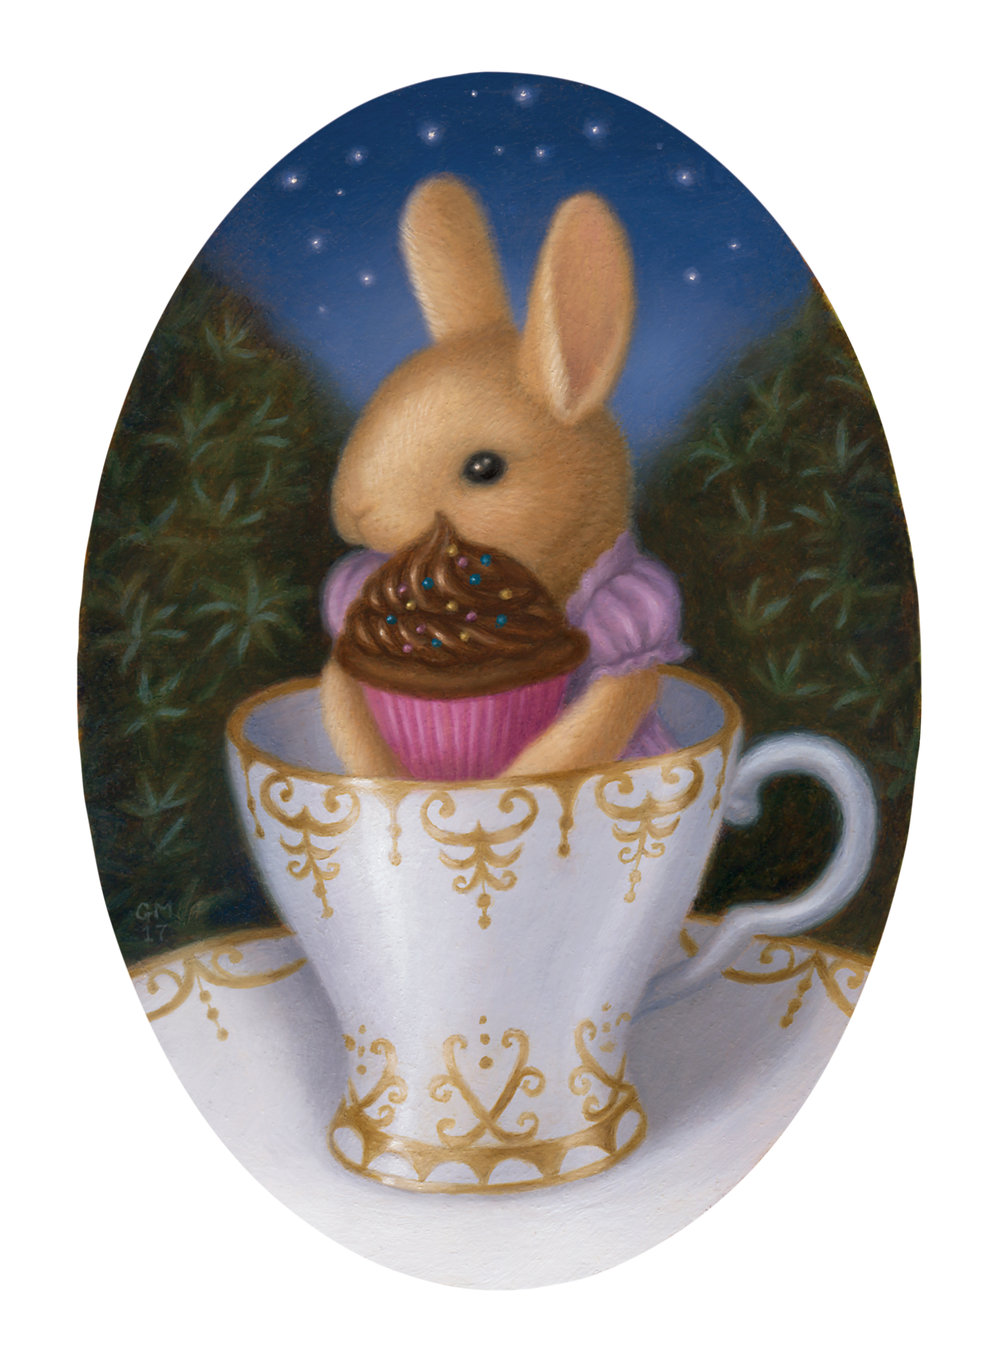 Bunny_Rabbit_Nature_Tea_Cup_Fantasy_Gina_Matarazzo.jpg